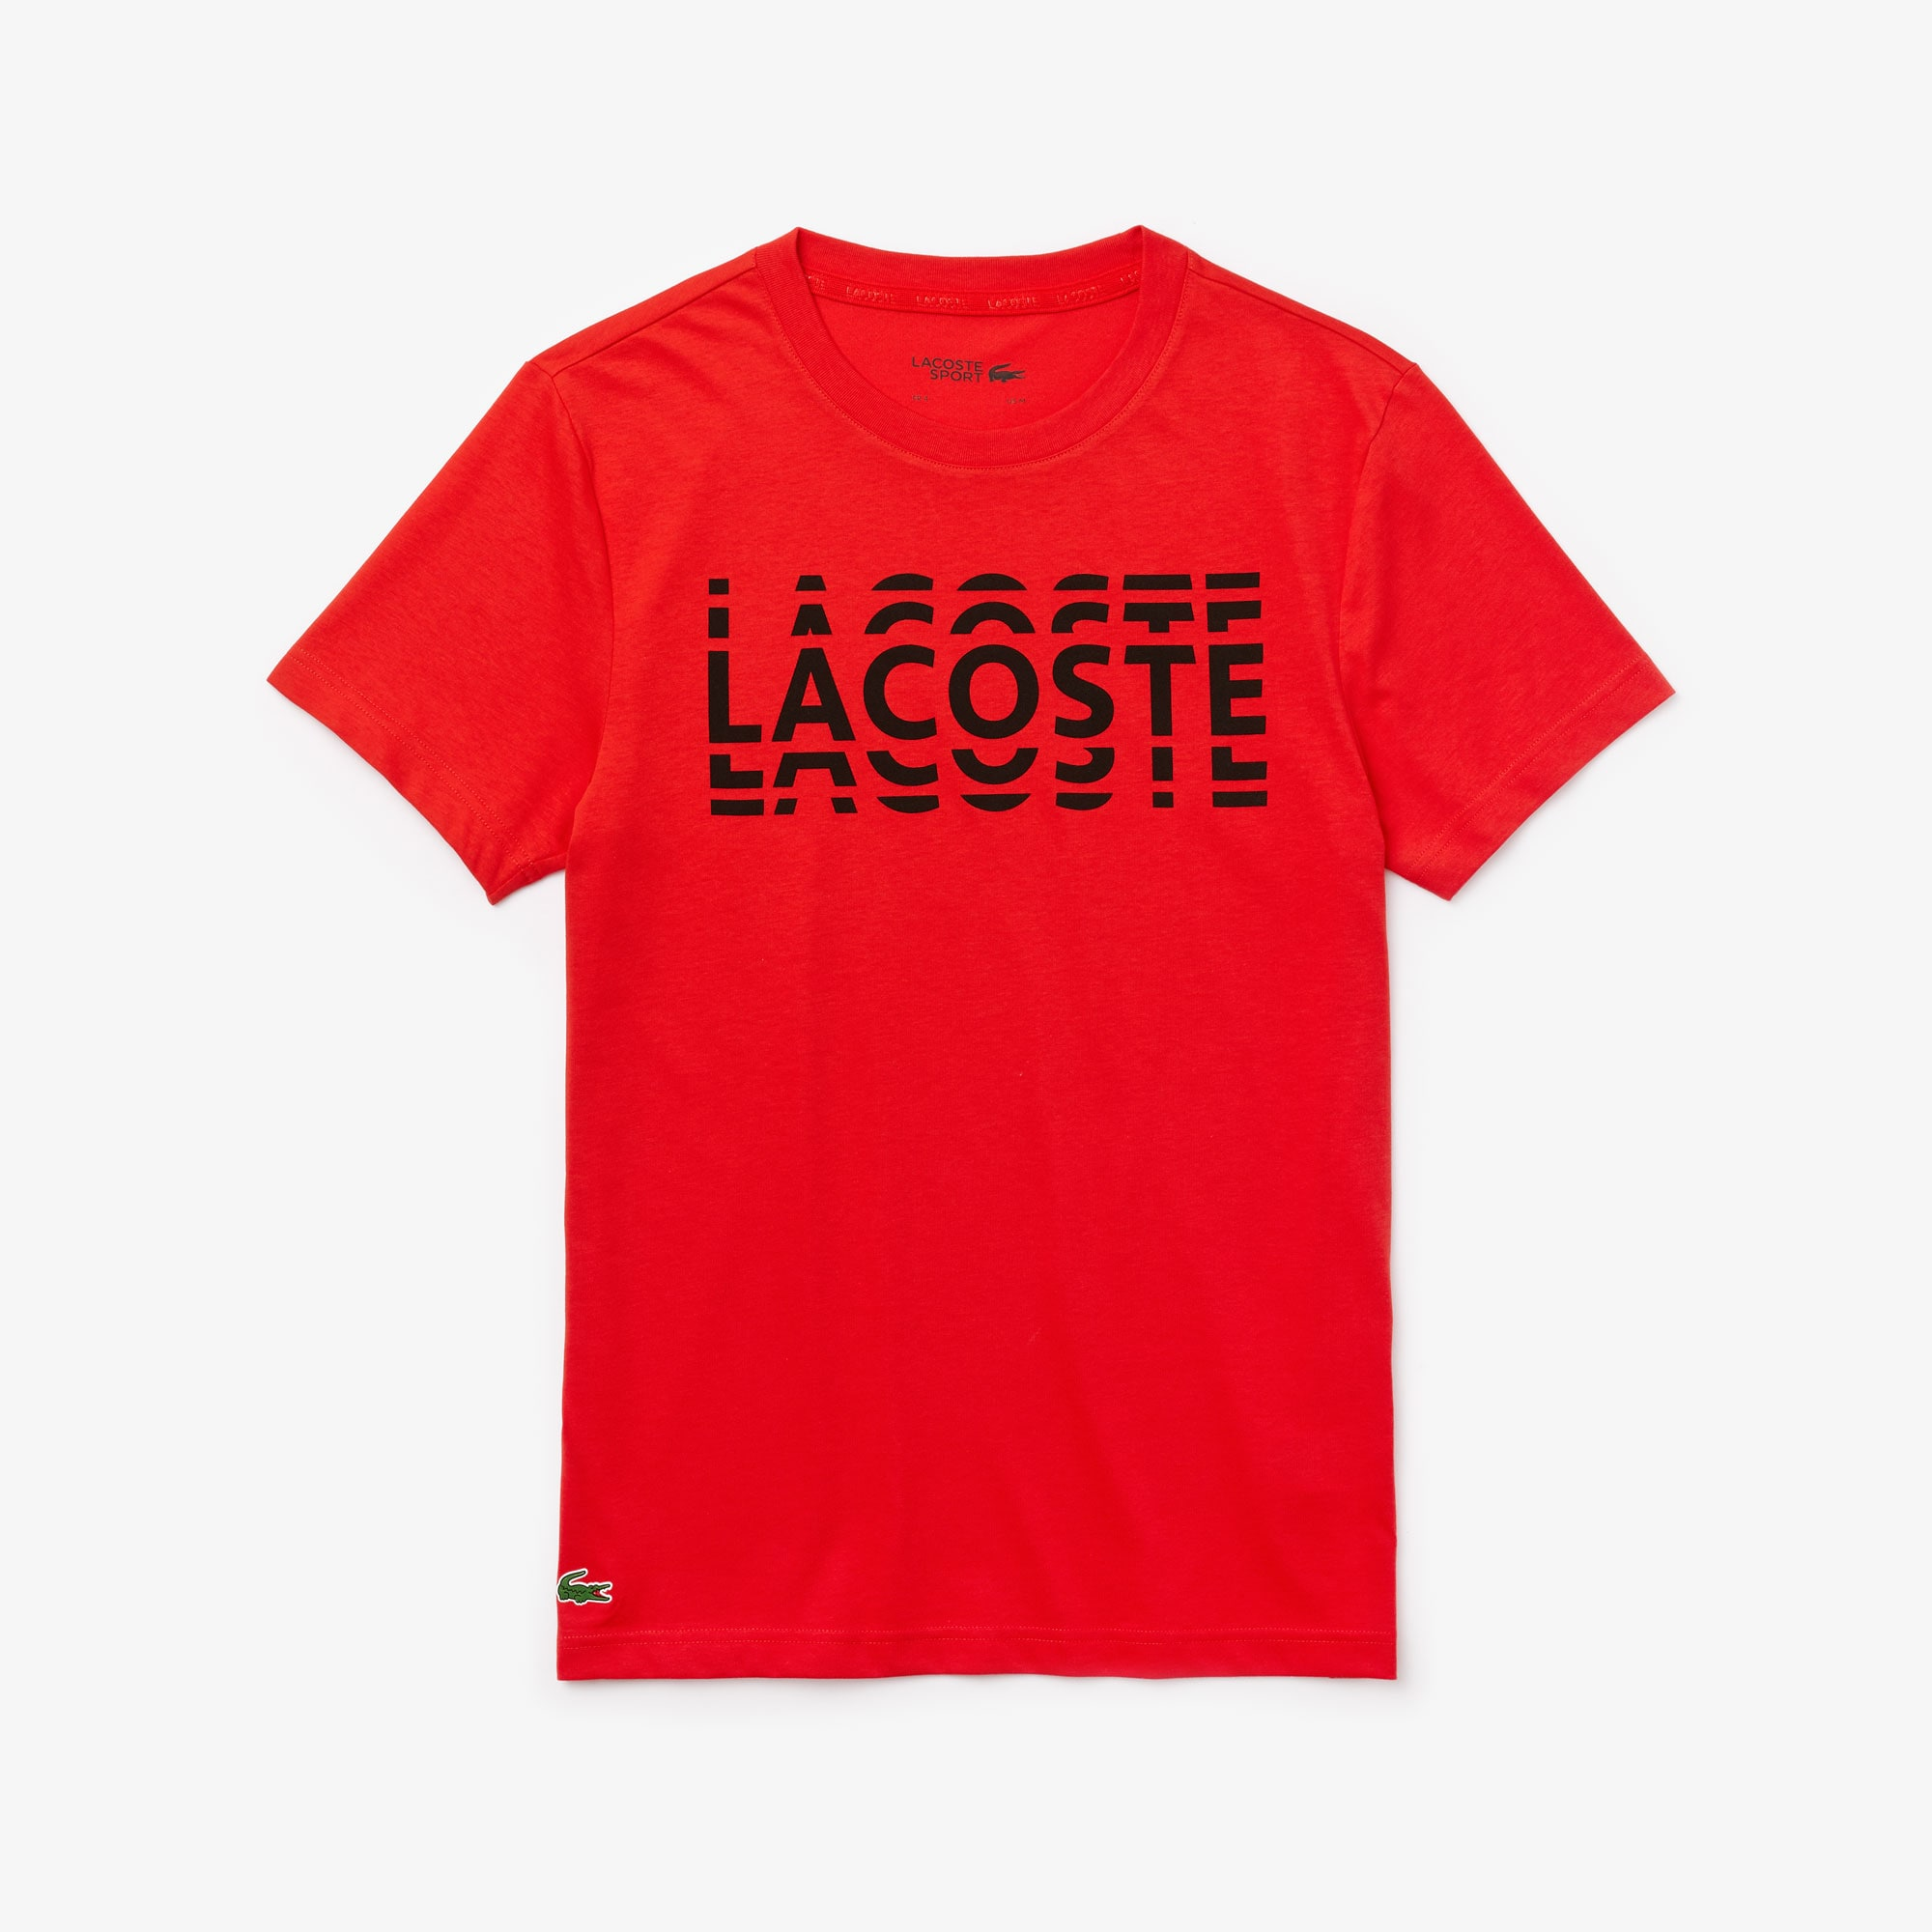 Men's Lacoste SPORT Printed Cotton Blend T-shirt